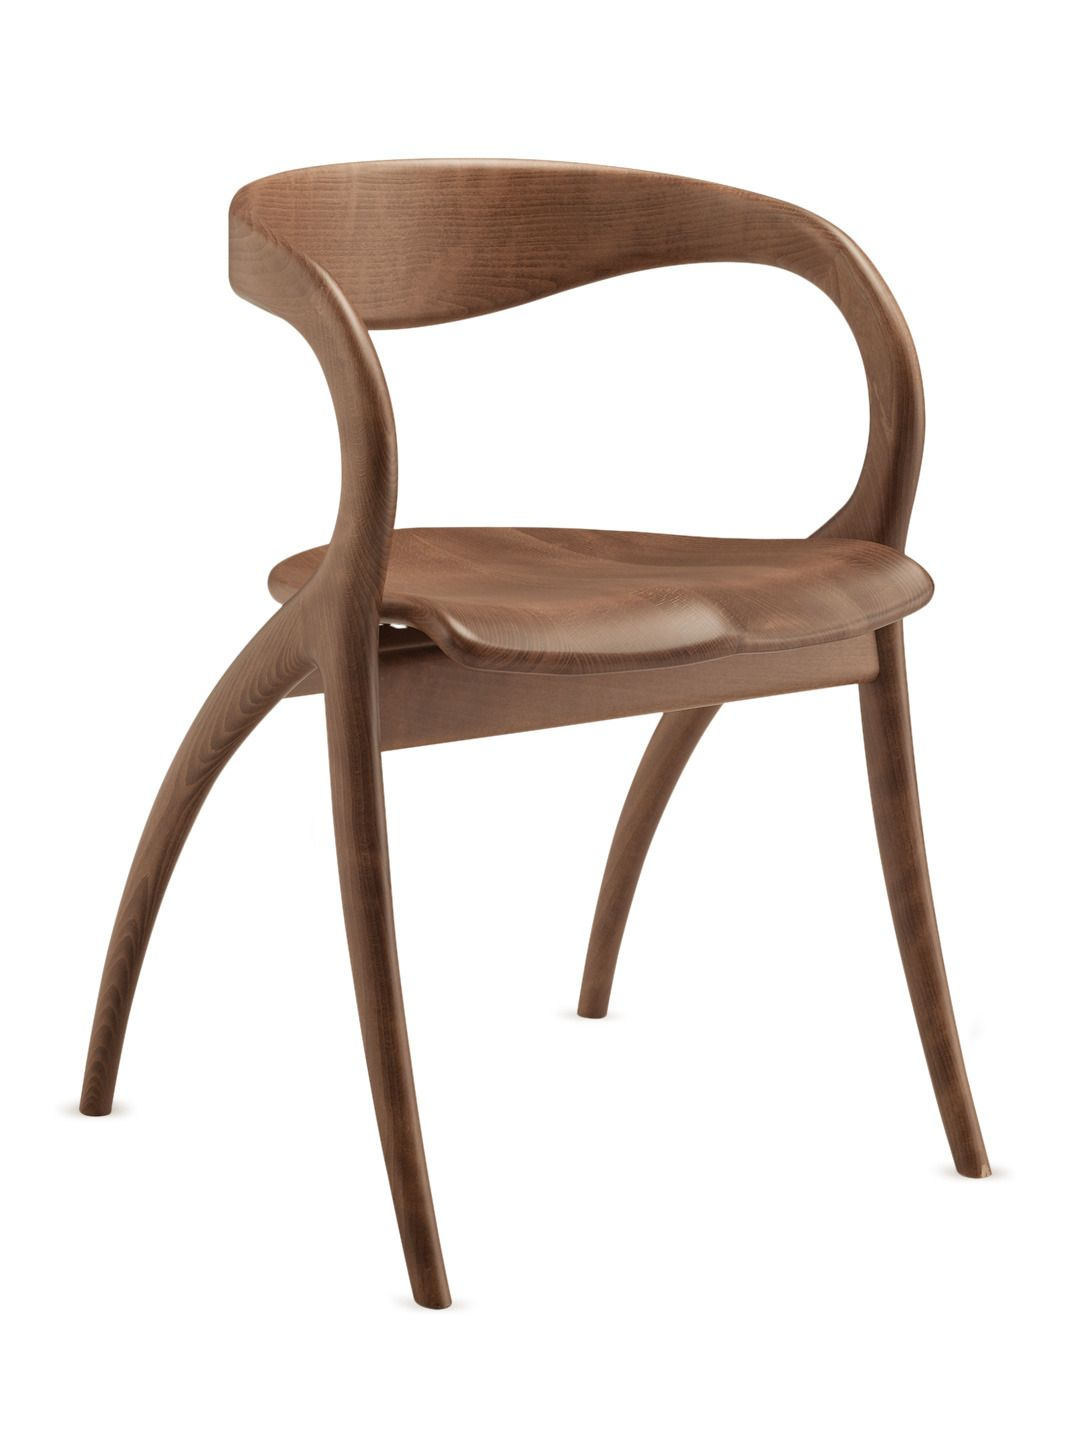 Star collection chair by domitalia at gilt